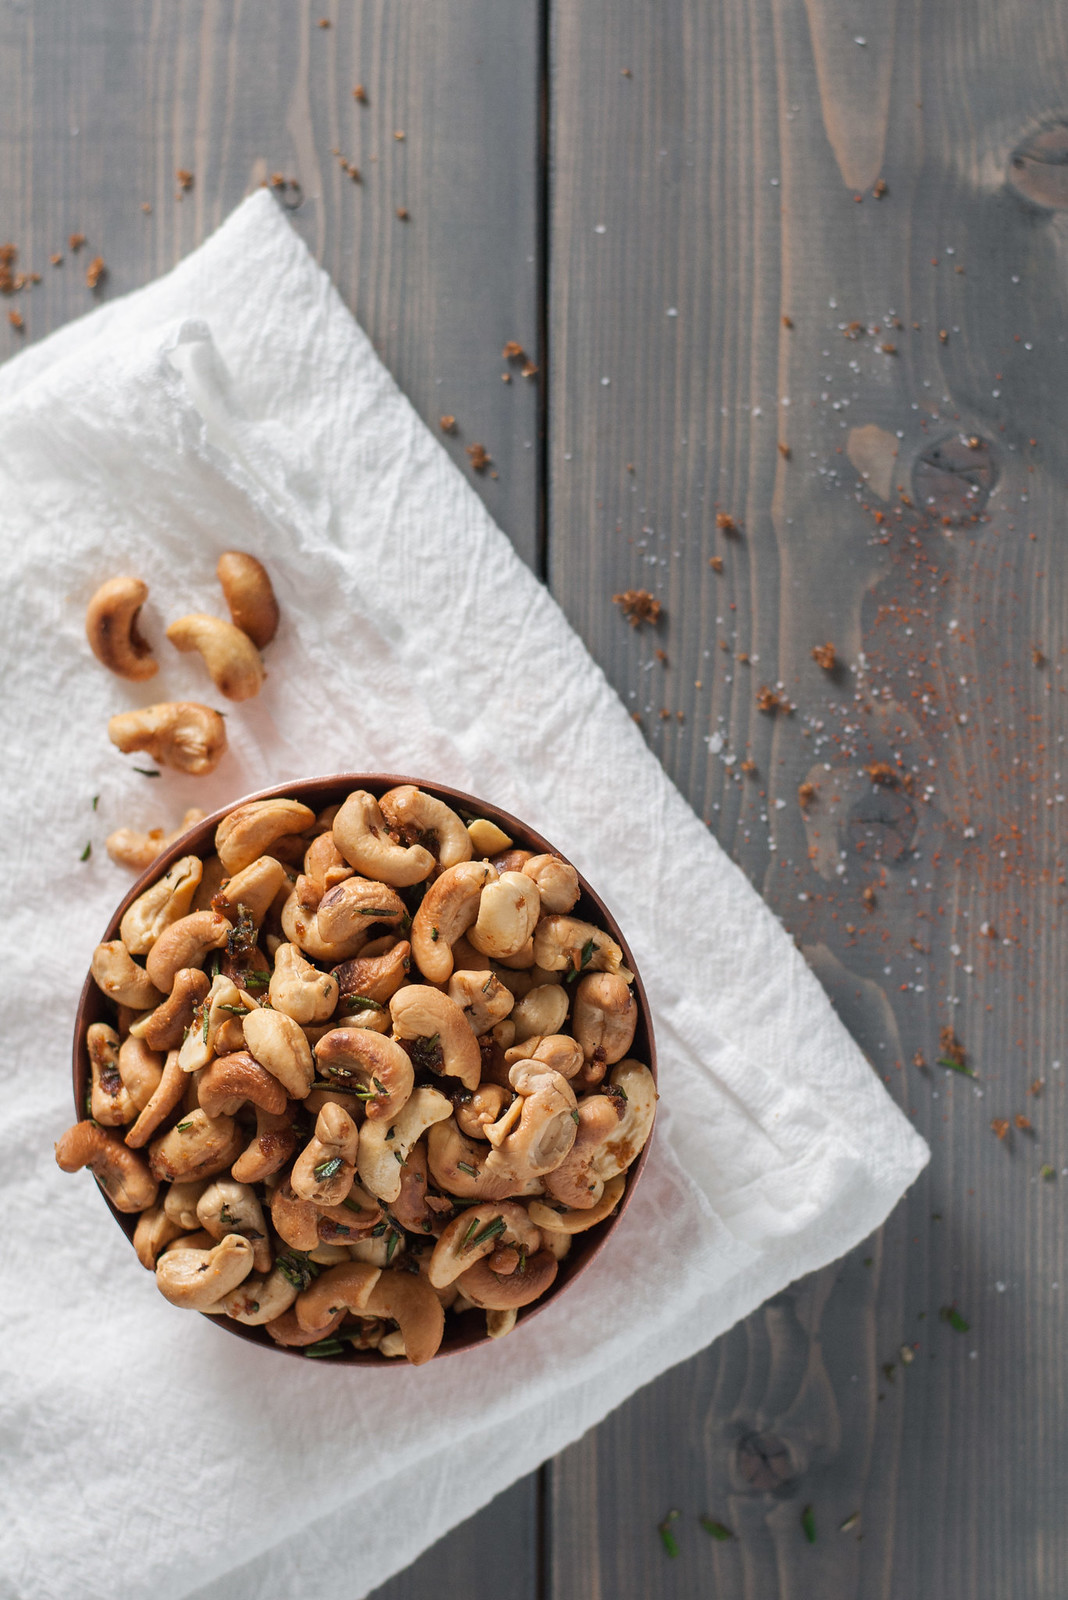 Ina's rosemary roasted cashews - the only cocktail nut recipe you'll need again. Ever.